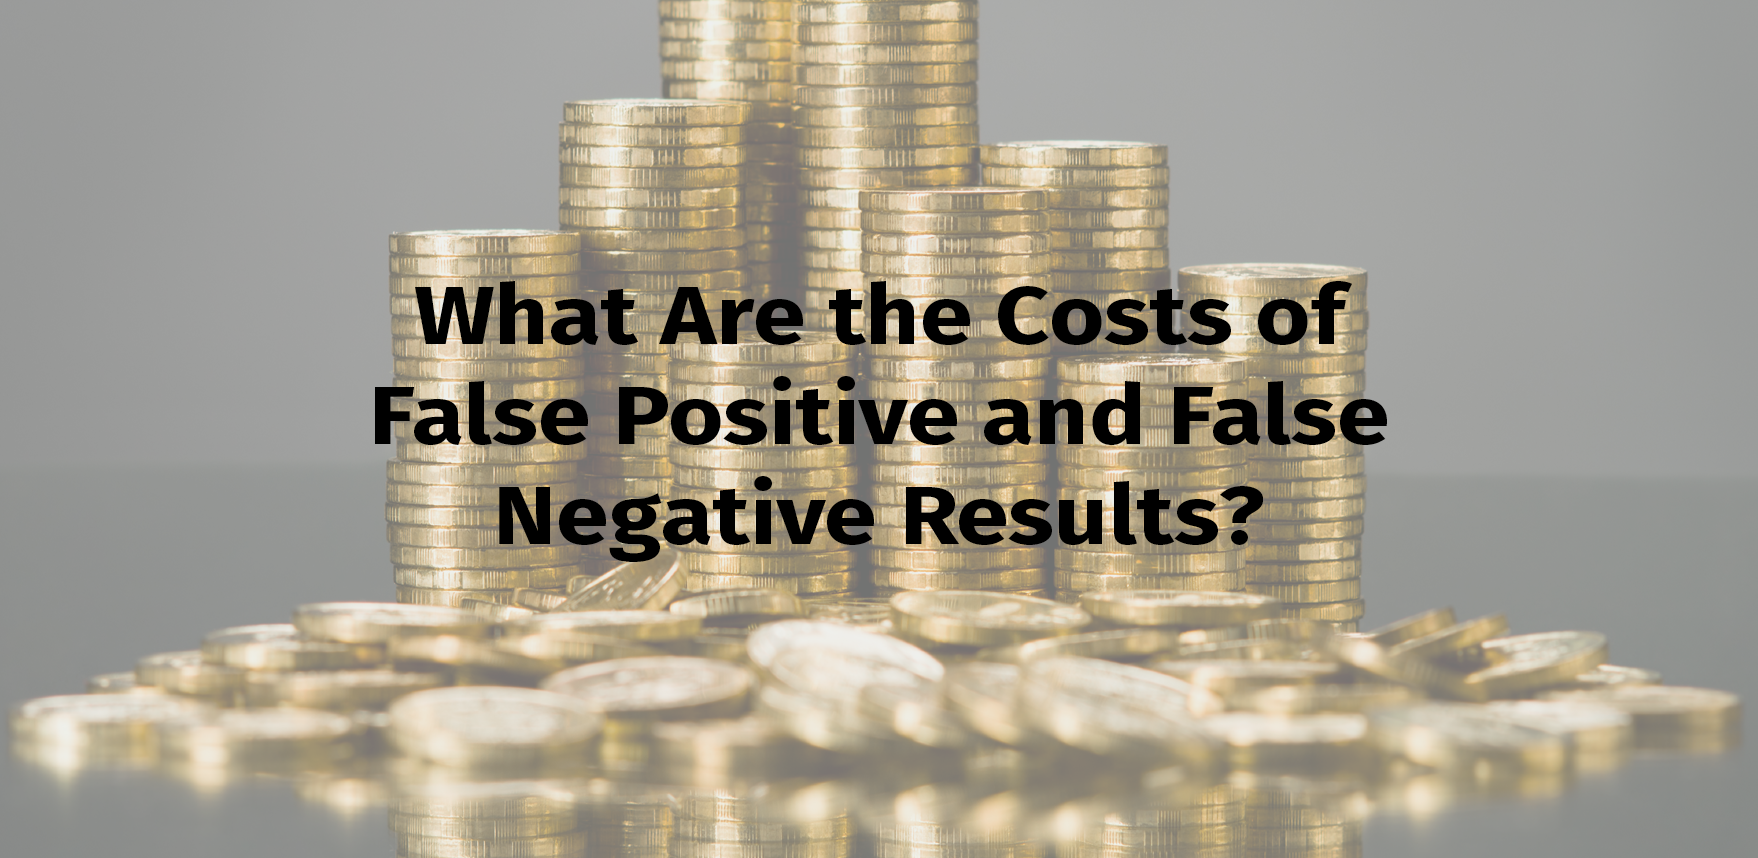 Costs-of-False-Positive-And-False-Negative-Results.png